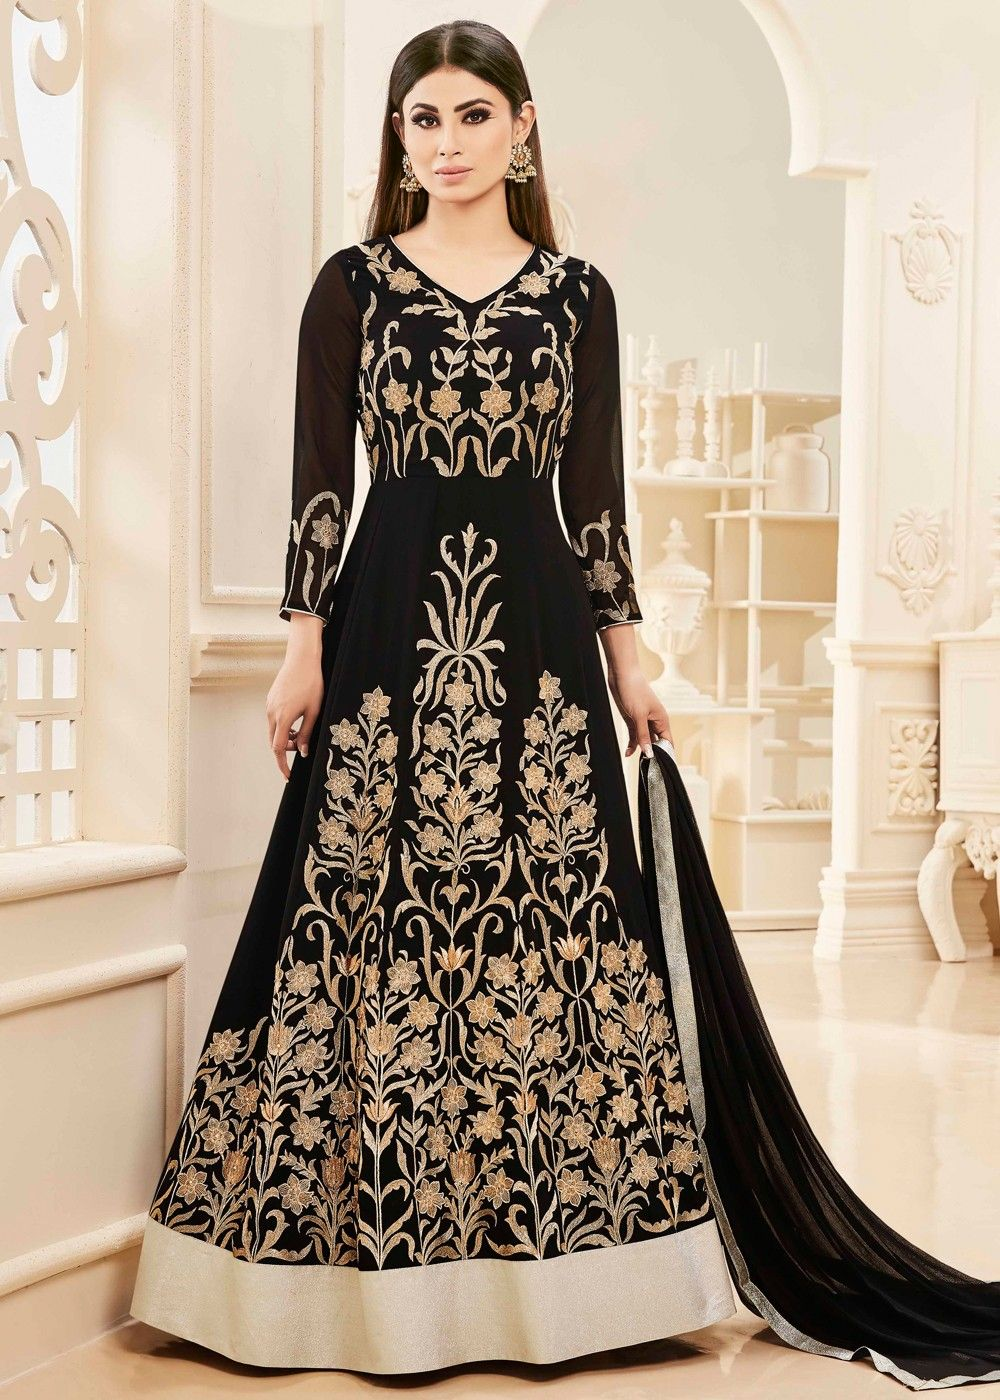 822b71ce564a #Abaya style #kalidar #black #georgette #suit in #golden floral #resham  #embroidery paired with #black #santoon bottom.